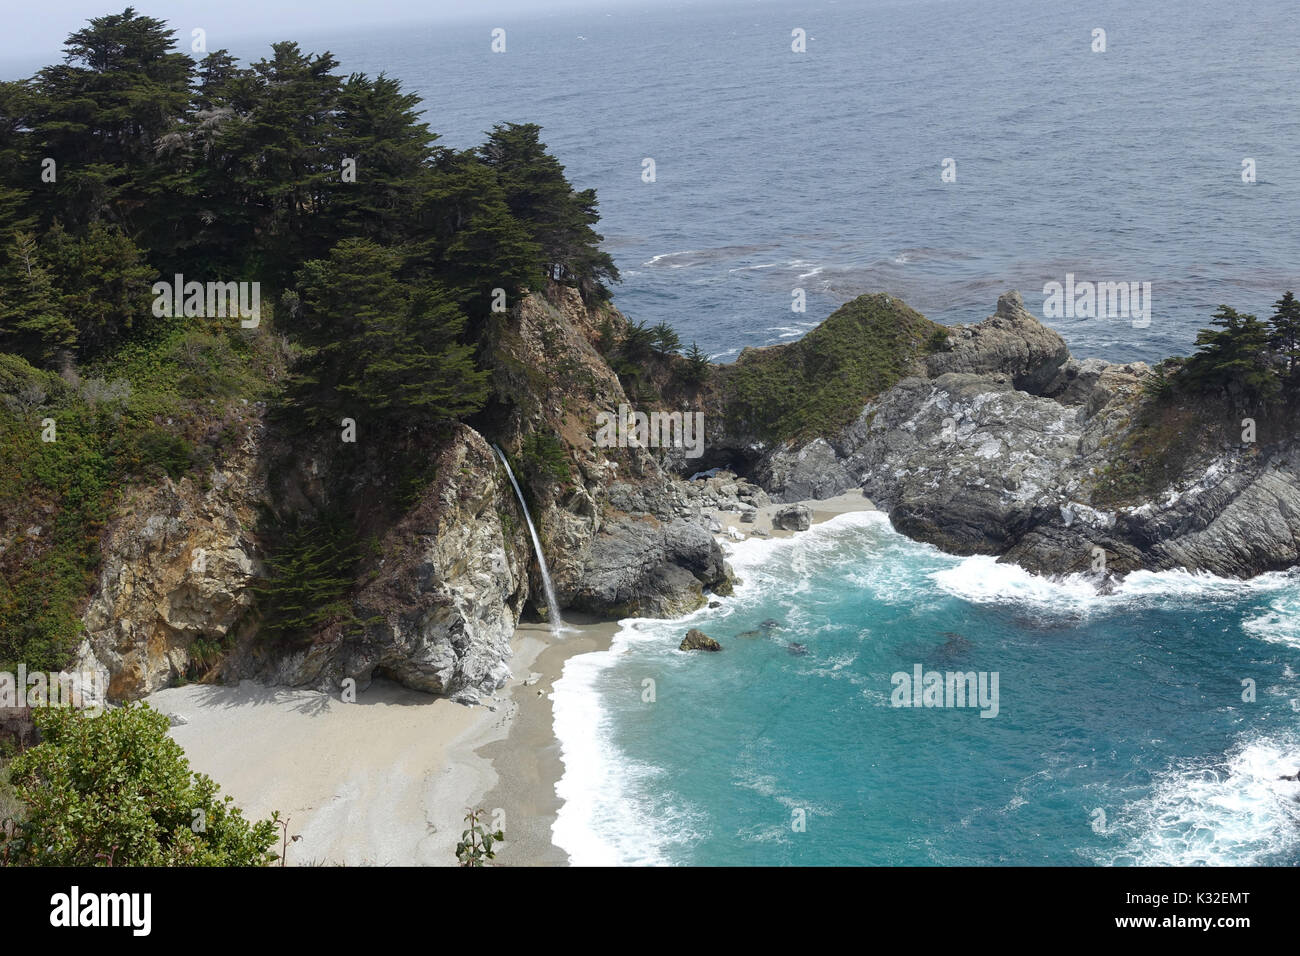 McWay Falls - Definitely a not-to-be-missed landmark for anyone traveling along Highway 1. - Stock Image